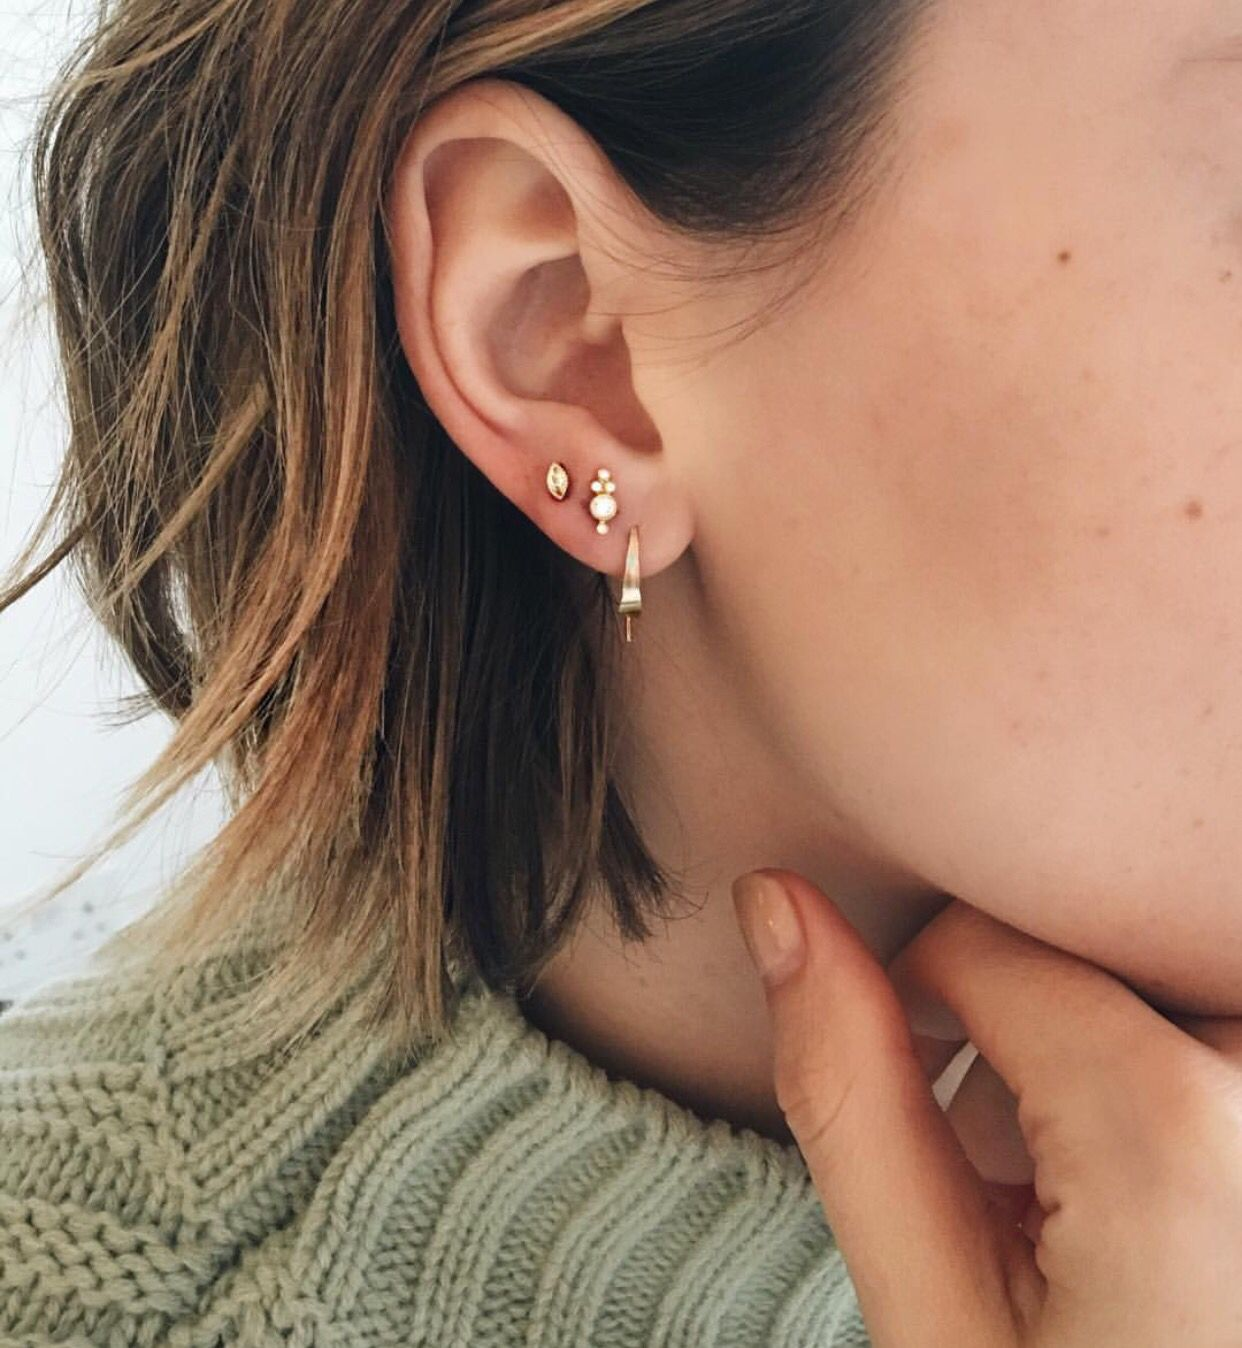 Nose piercing day 3  Pin by Michelle Guerrero on Body Mods  Pinterest  Piercings